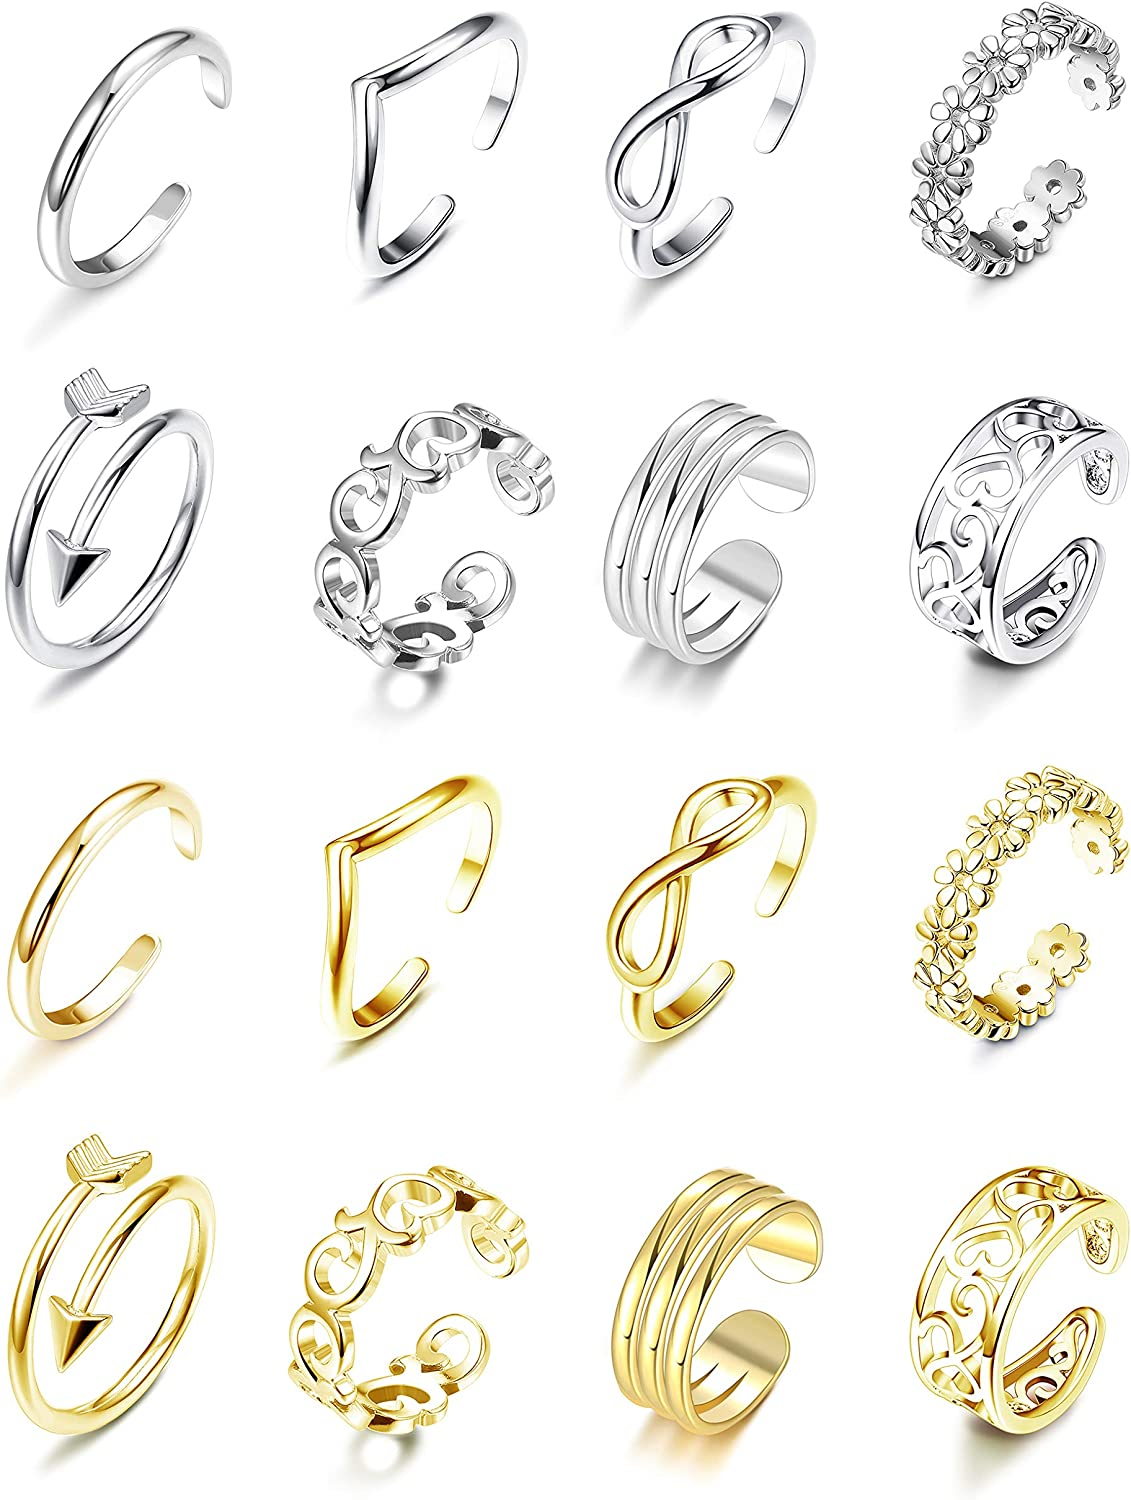 CASSIECA 16 Pcs Adjustable Toe Rings for Women Tail Open Ring Set Vintage Retro Wave Band Infinity Hollow Flower Celtic Knot Arrow Gift Jewelry